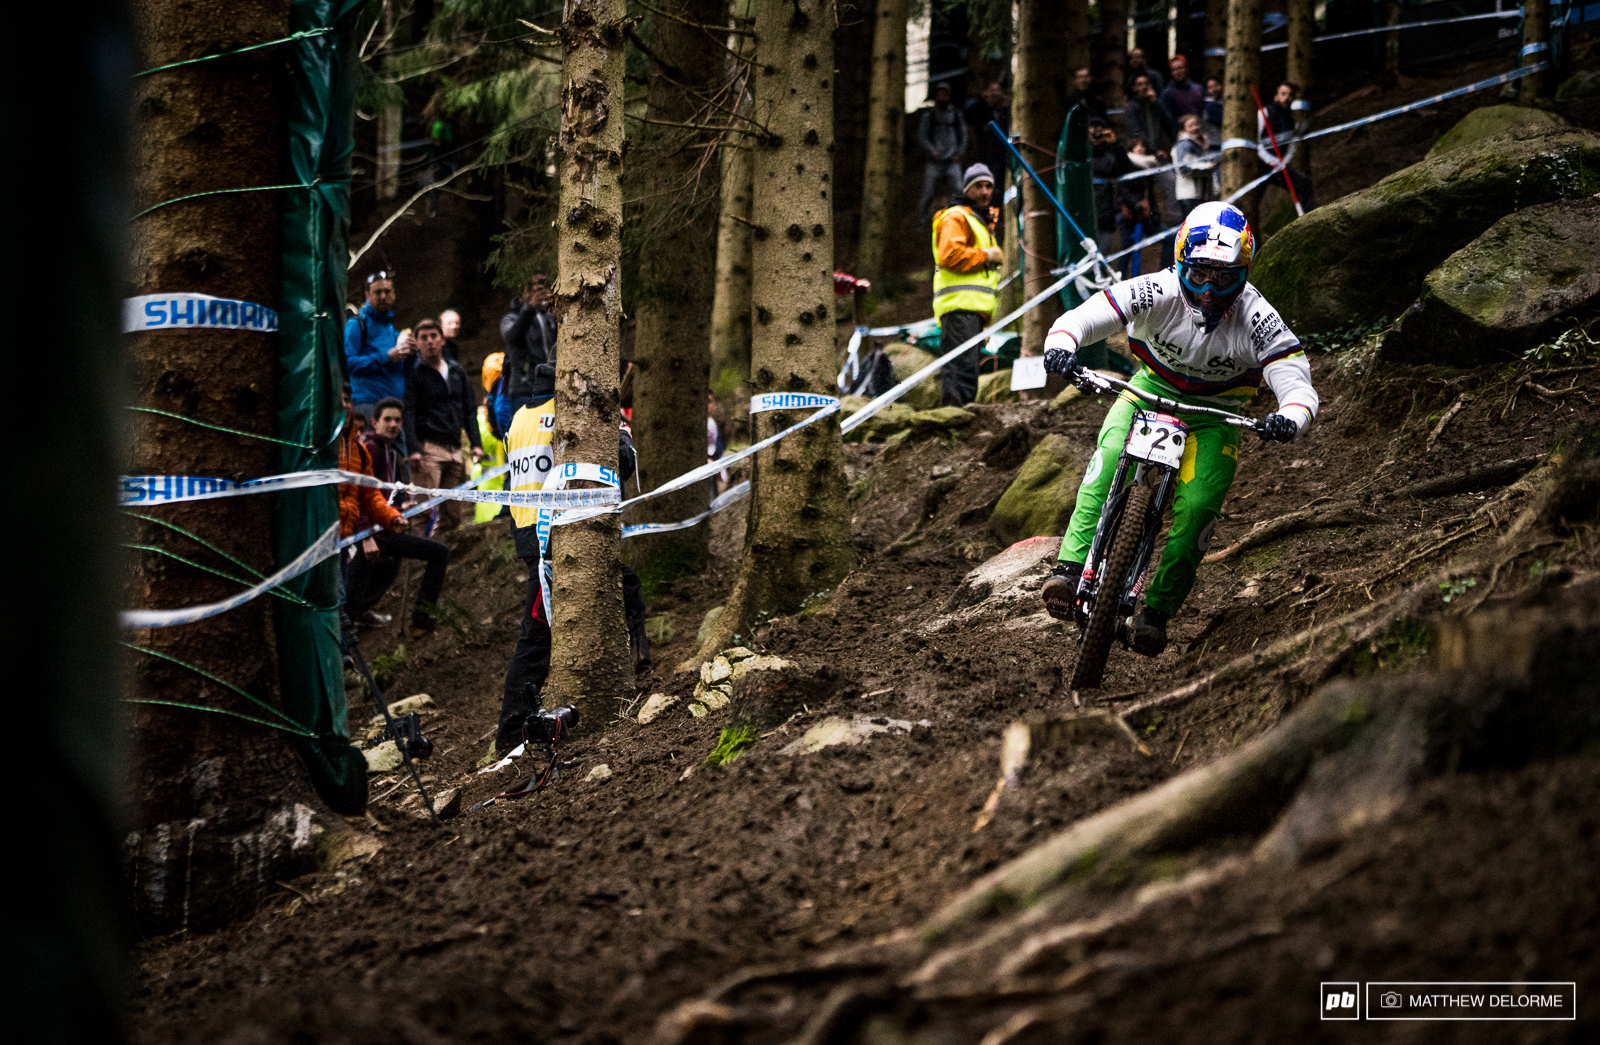 Loic Bruni has been called the first Pope of Downhill this week. We can see why. He s been blisteringly fast on a track where many have struggled. He has parted the mud and the water with seems could only be divine ability. Loic qualified first today in his technicolor rainbow jersey.